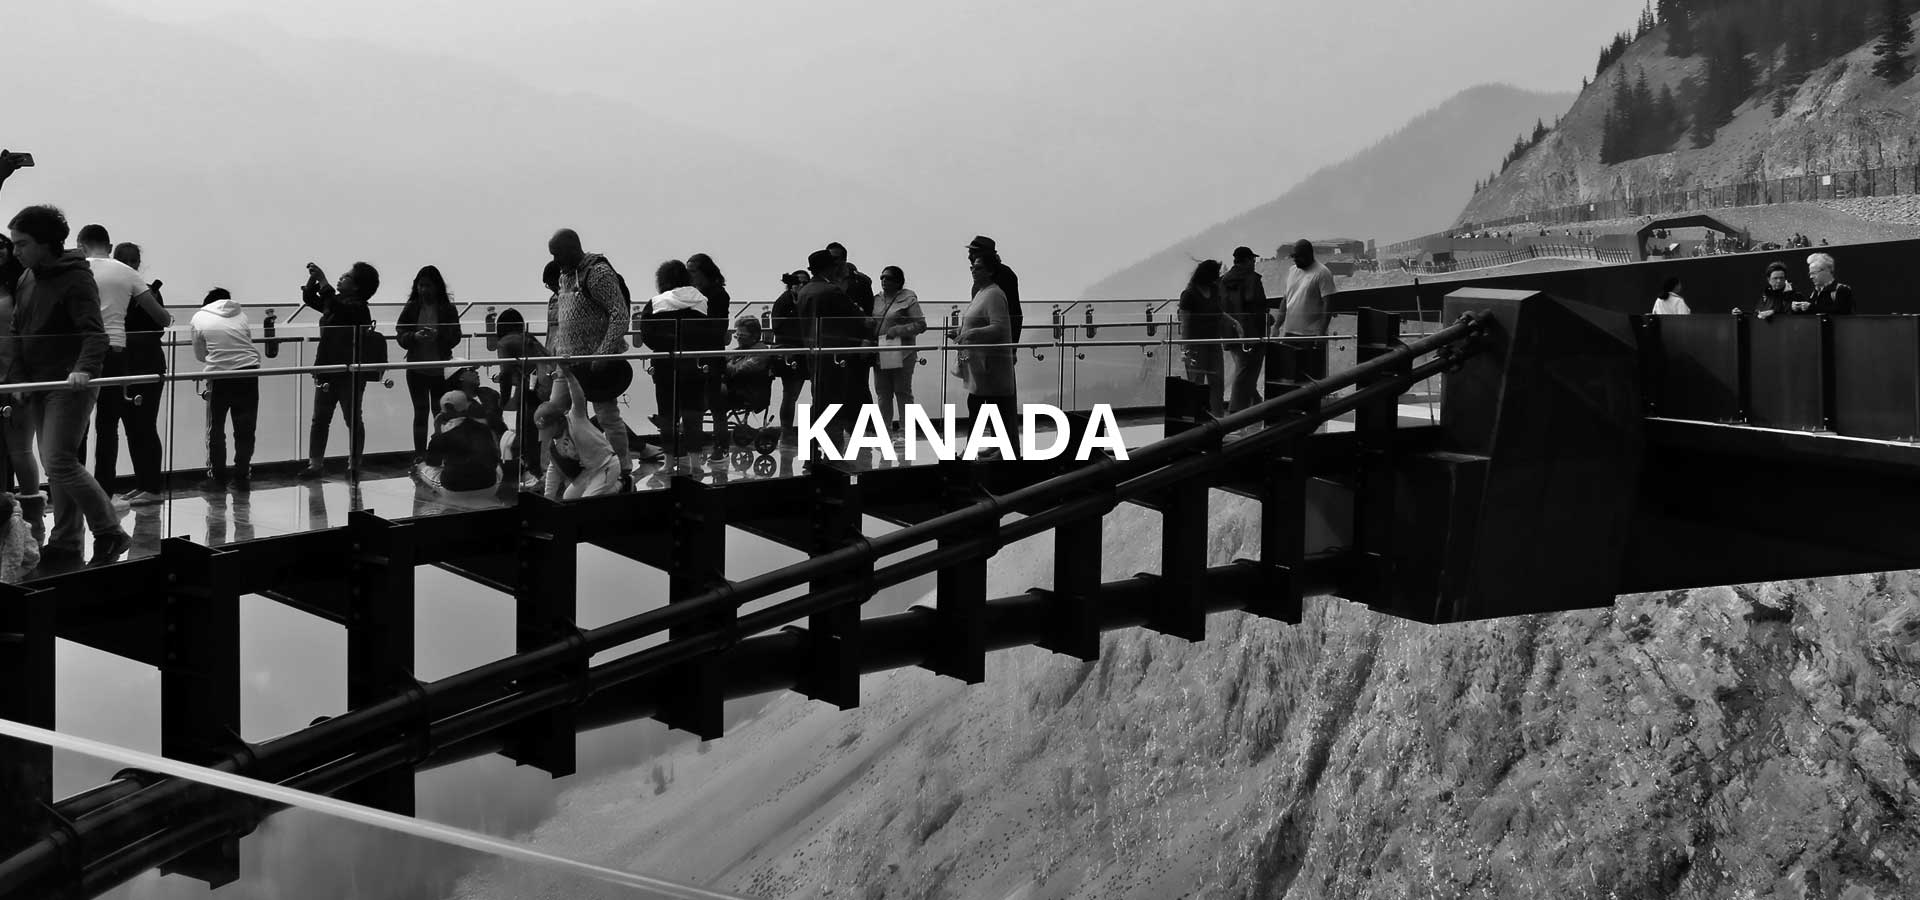 life is a beach - Kanada